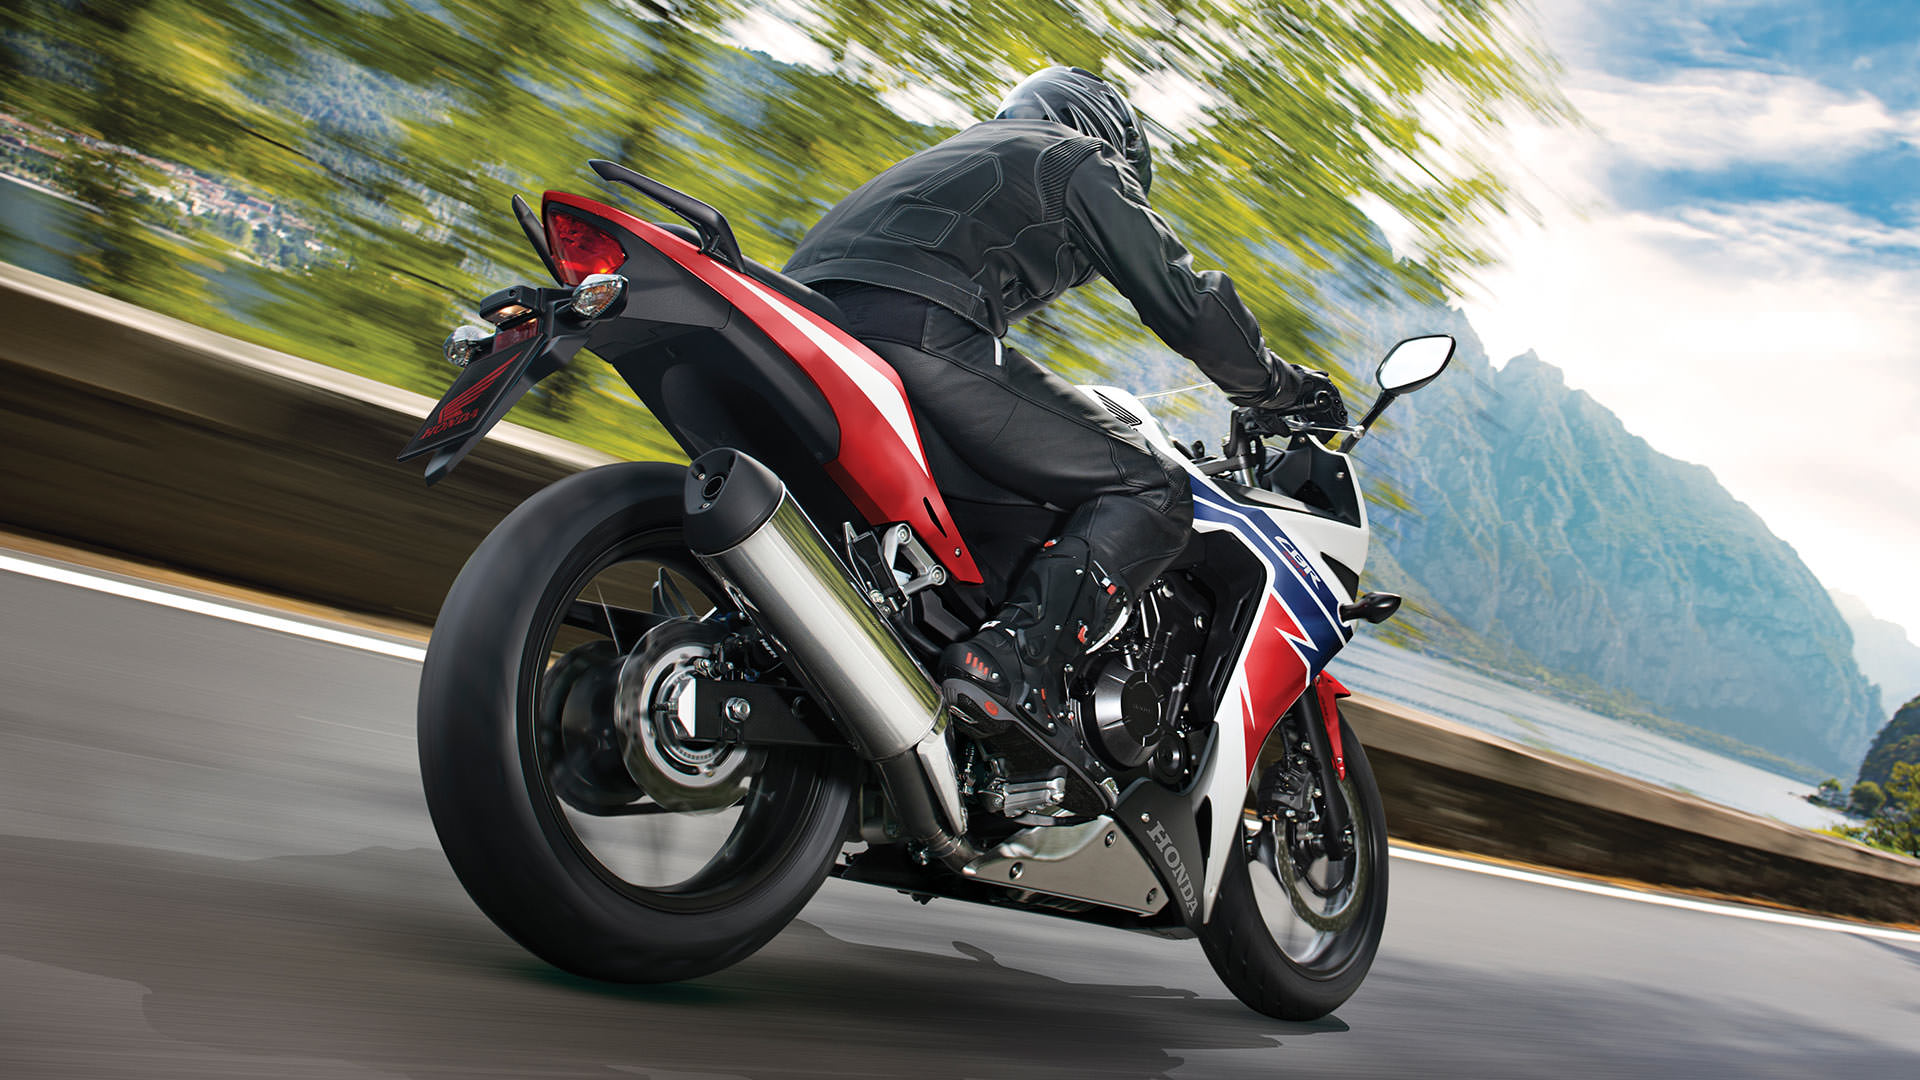 2014 honda cbr500r review specs pictures videos. Black Bedroom Furniture Sets. Home Design Ideas